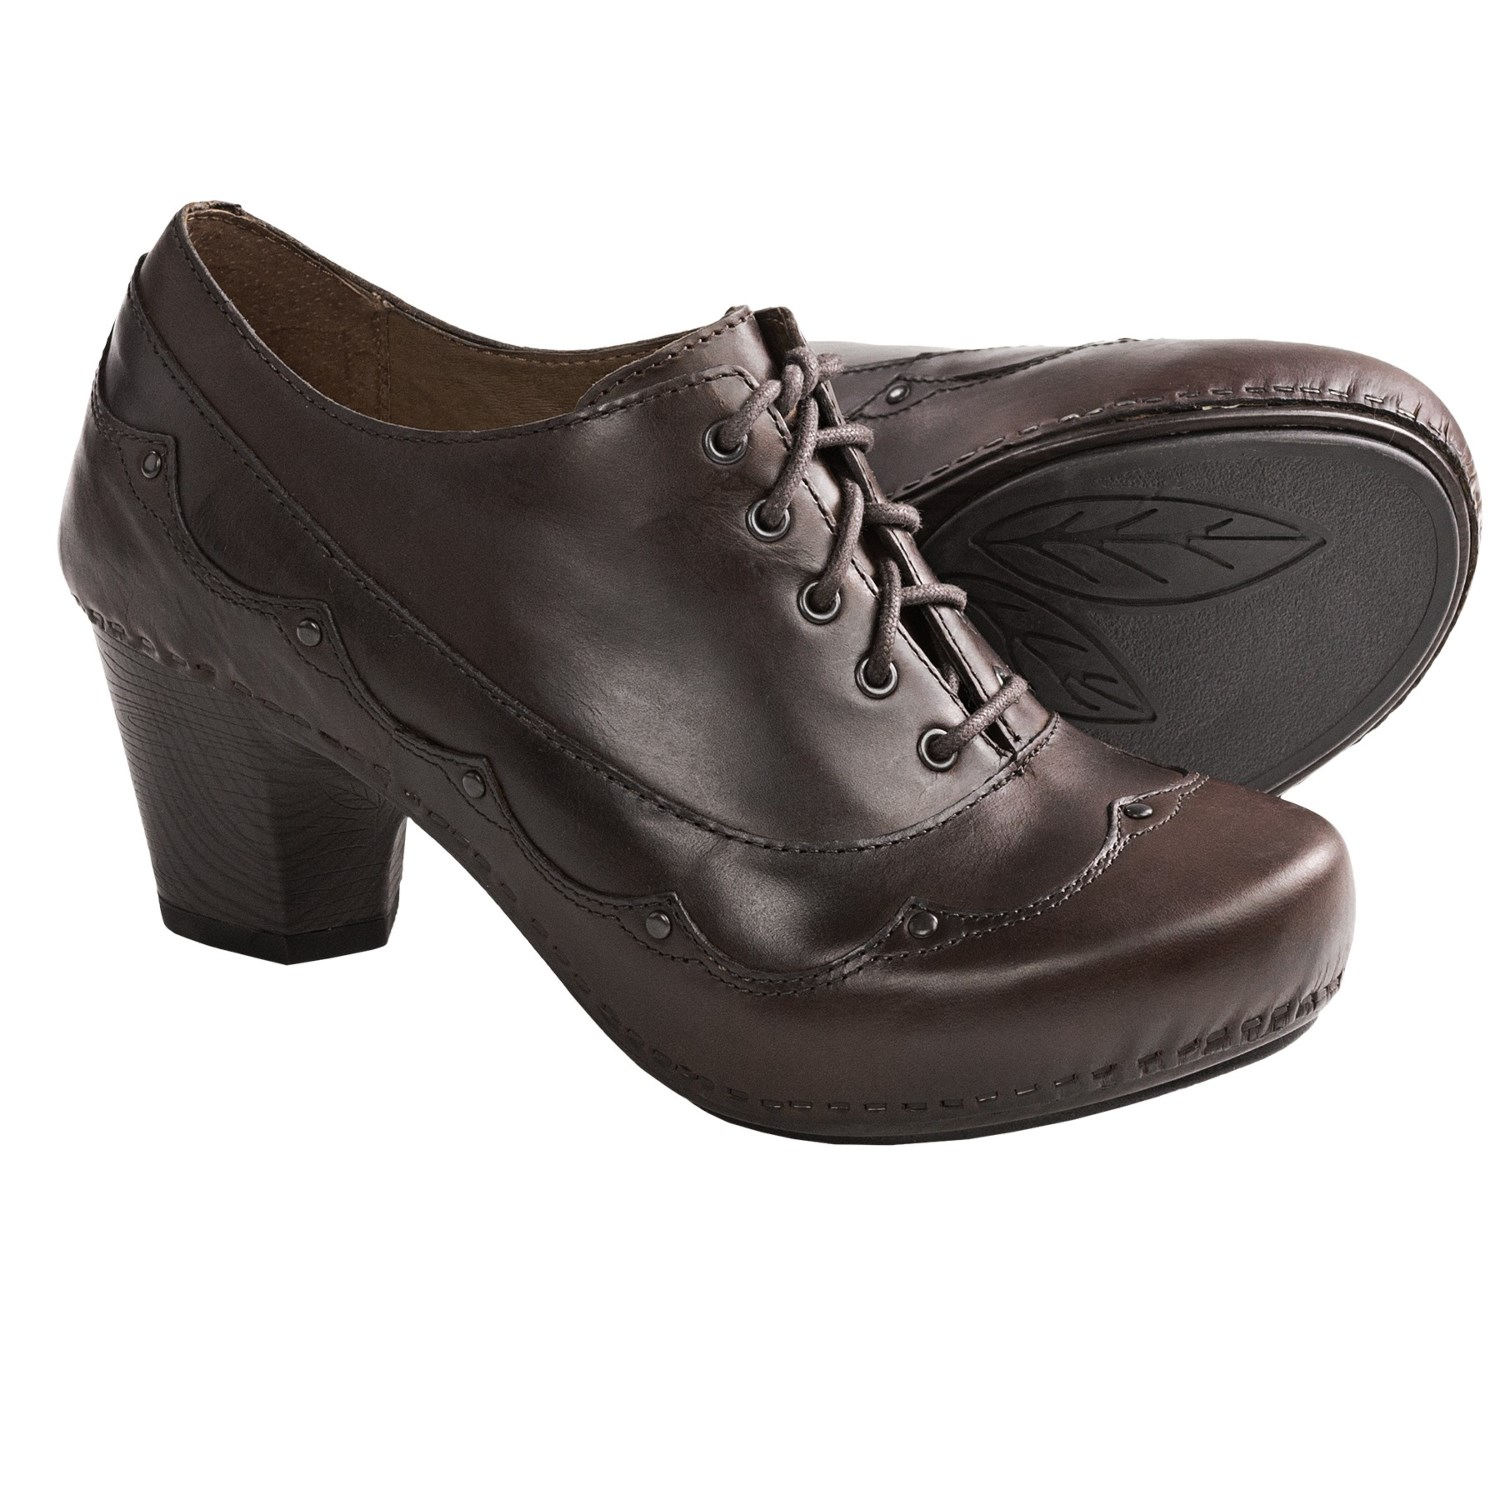 Dansko Shoes Boots